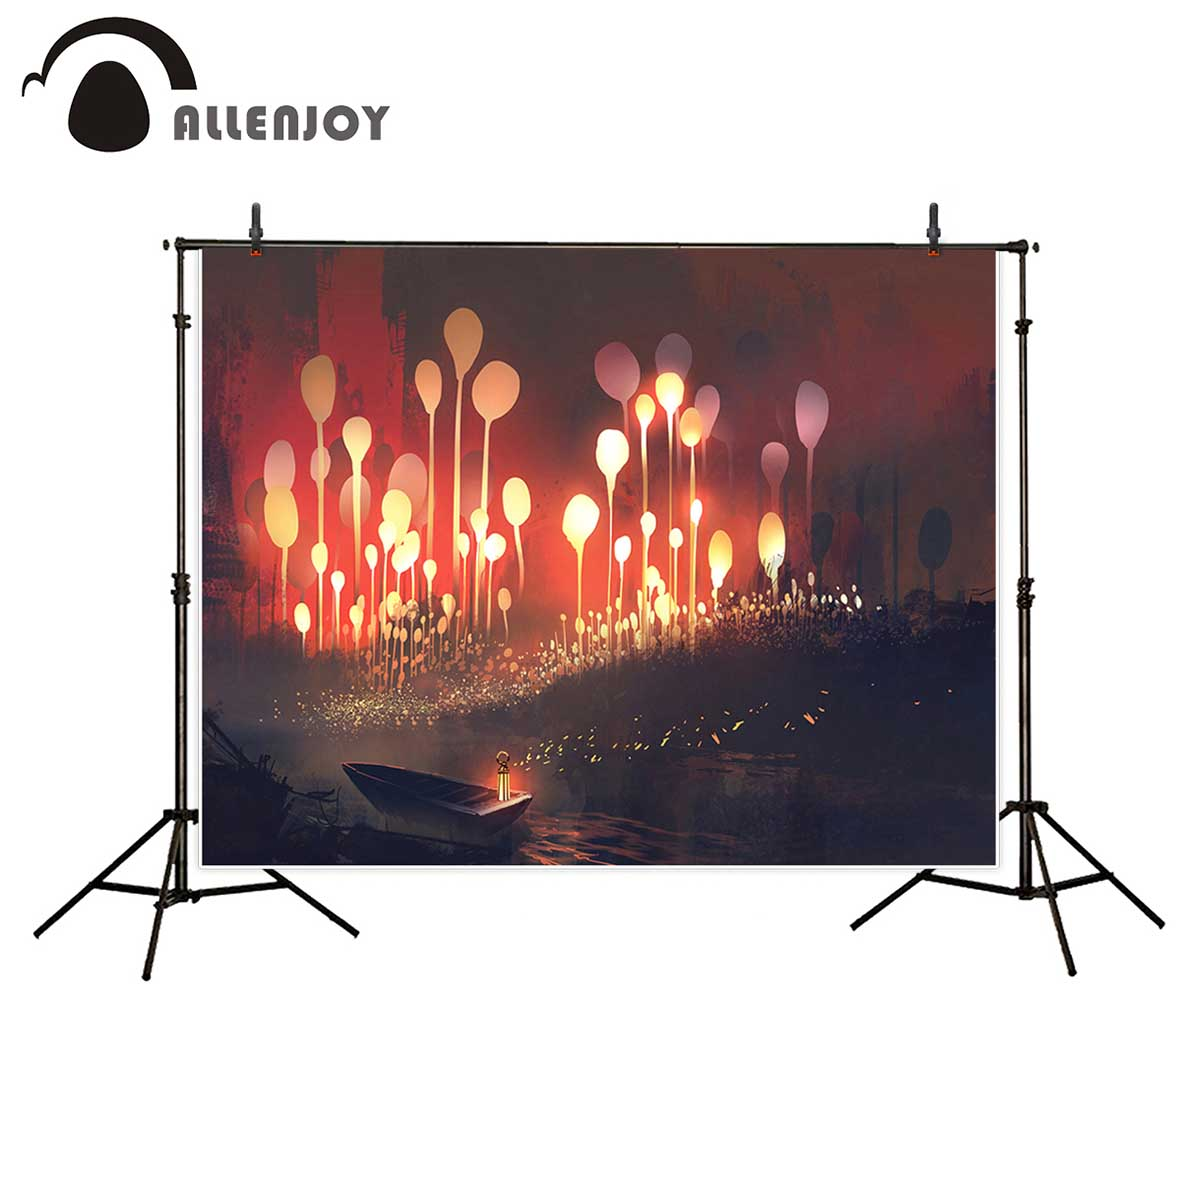 Allenjoy photography backdrops Wonderland children background boat shiny flowers backgrounds for photo studio for photography 600cm 300cm backgrounds painting flowers blooming beauty mother s day photography backdrops photo lk 1428